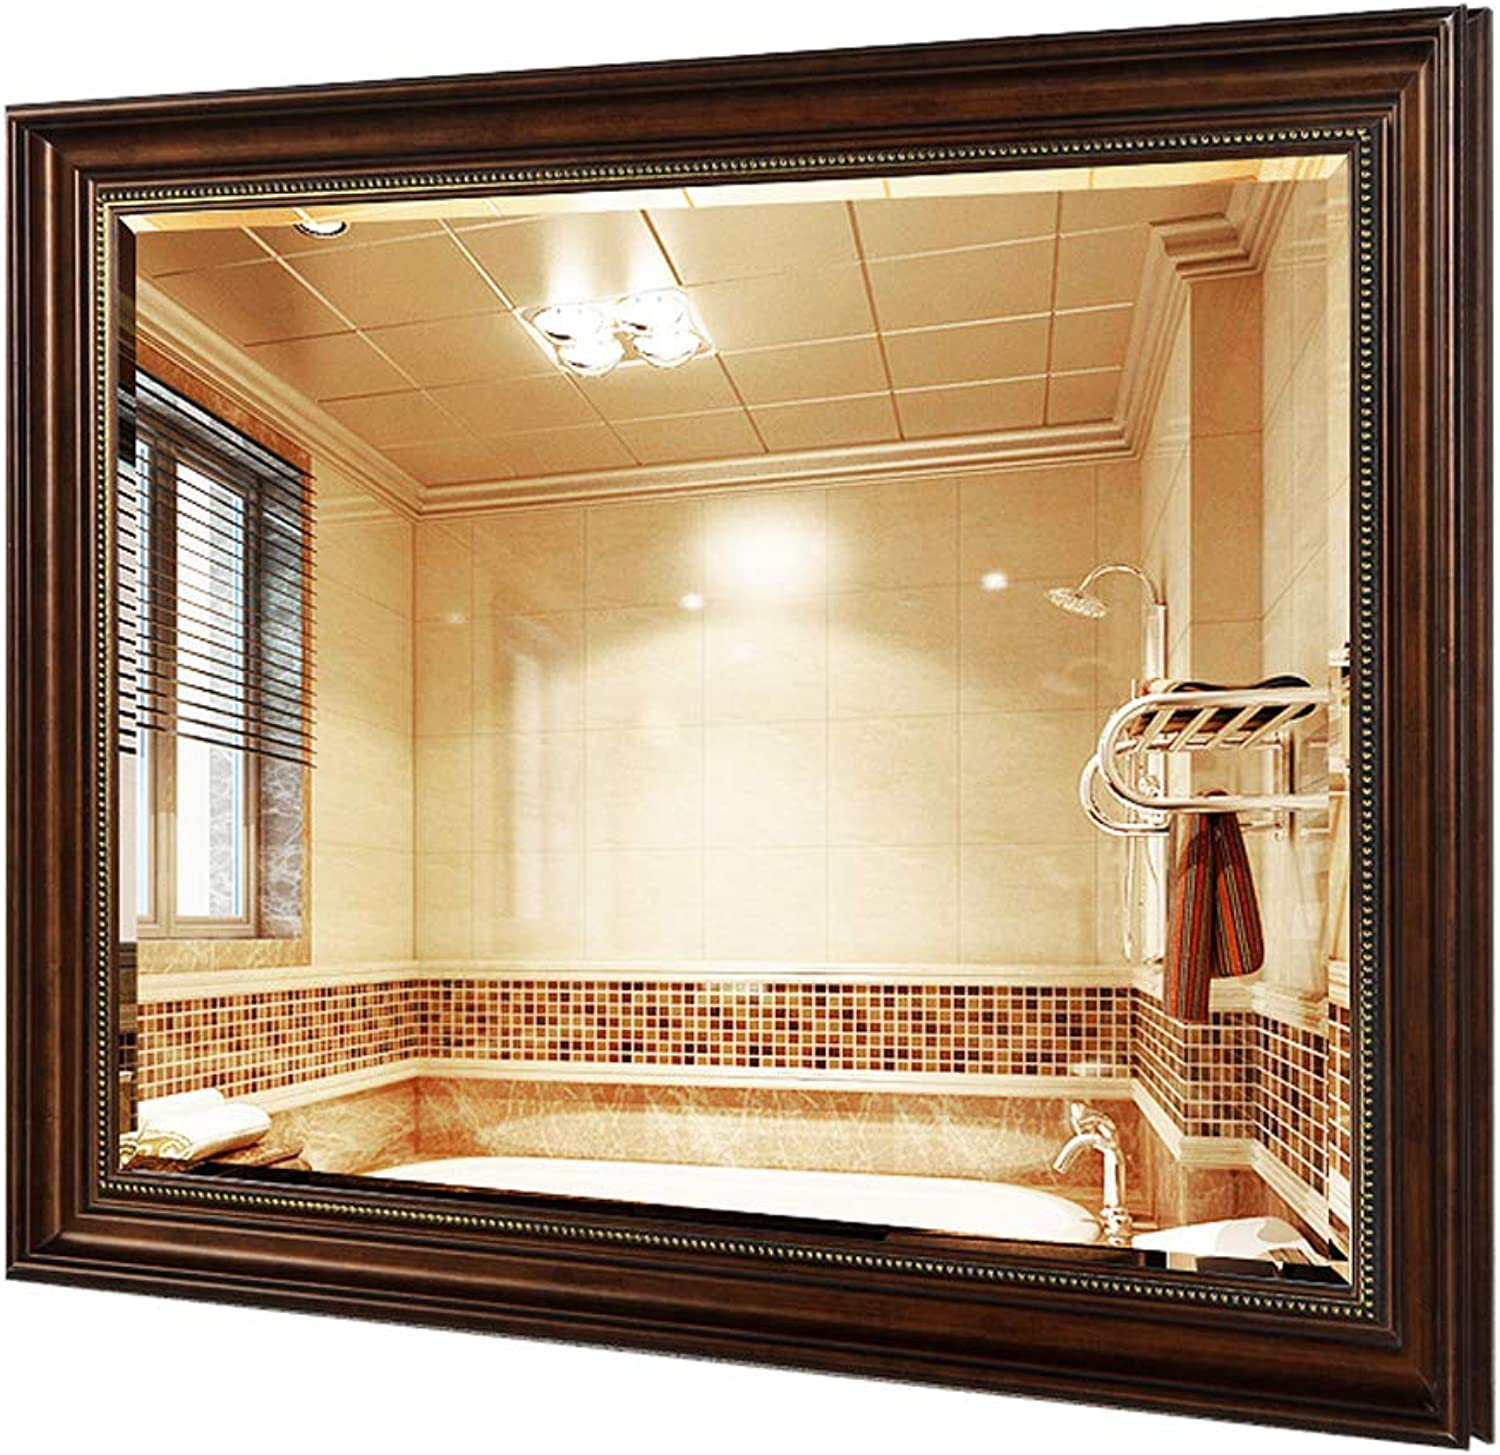 Mirror Makeup Bathroom Rectangle Retro Framed Wall Mounted Mirror Decorative Shower Shave Hang Mirror for Home Bedroom Living Room 60CM x 80CM(24Inch x 32Inch)